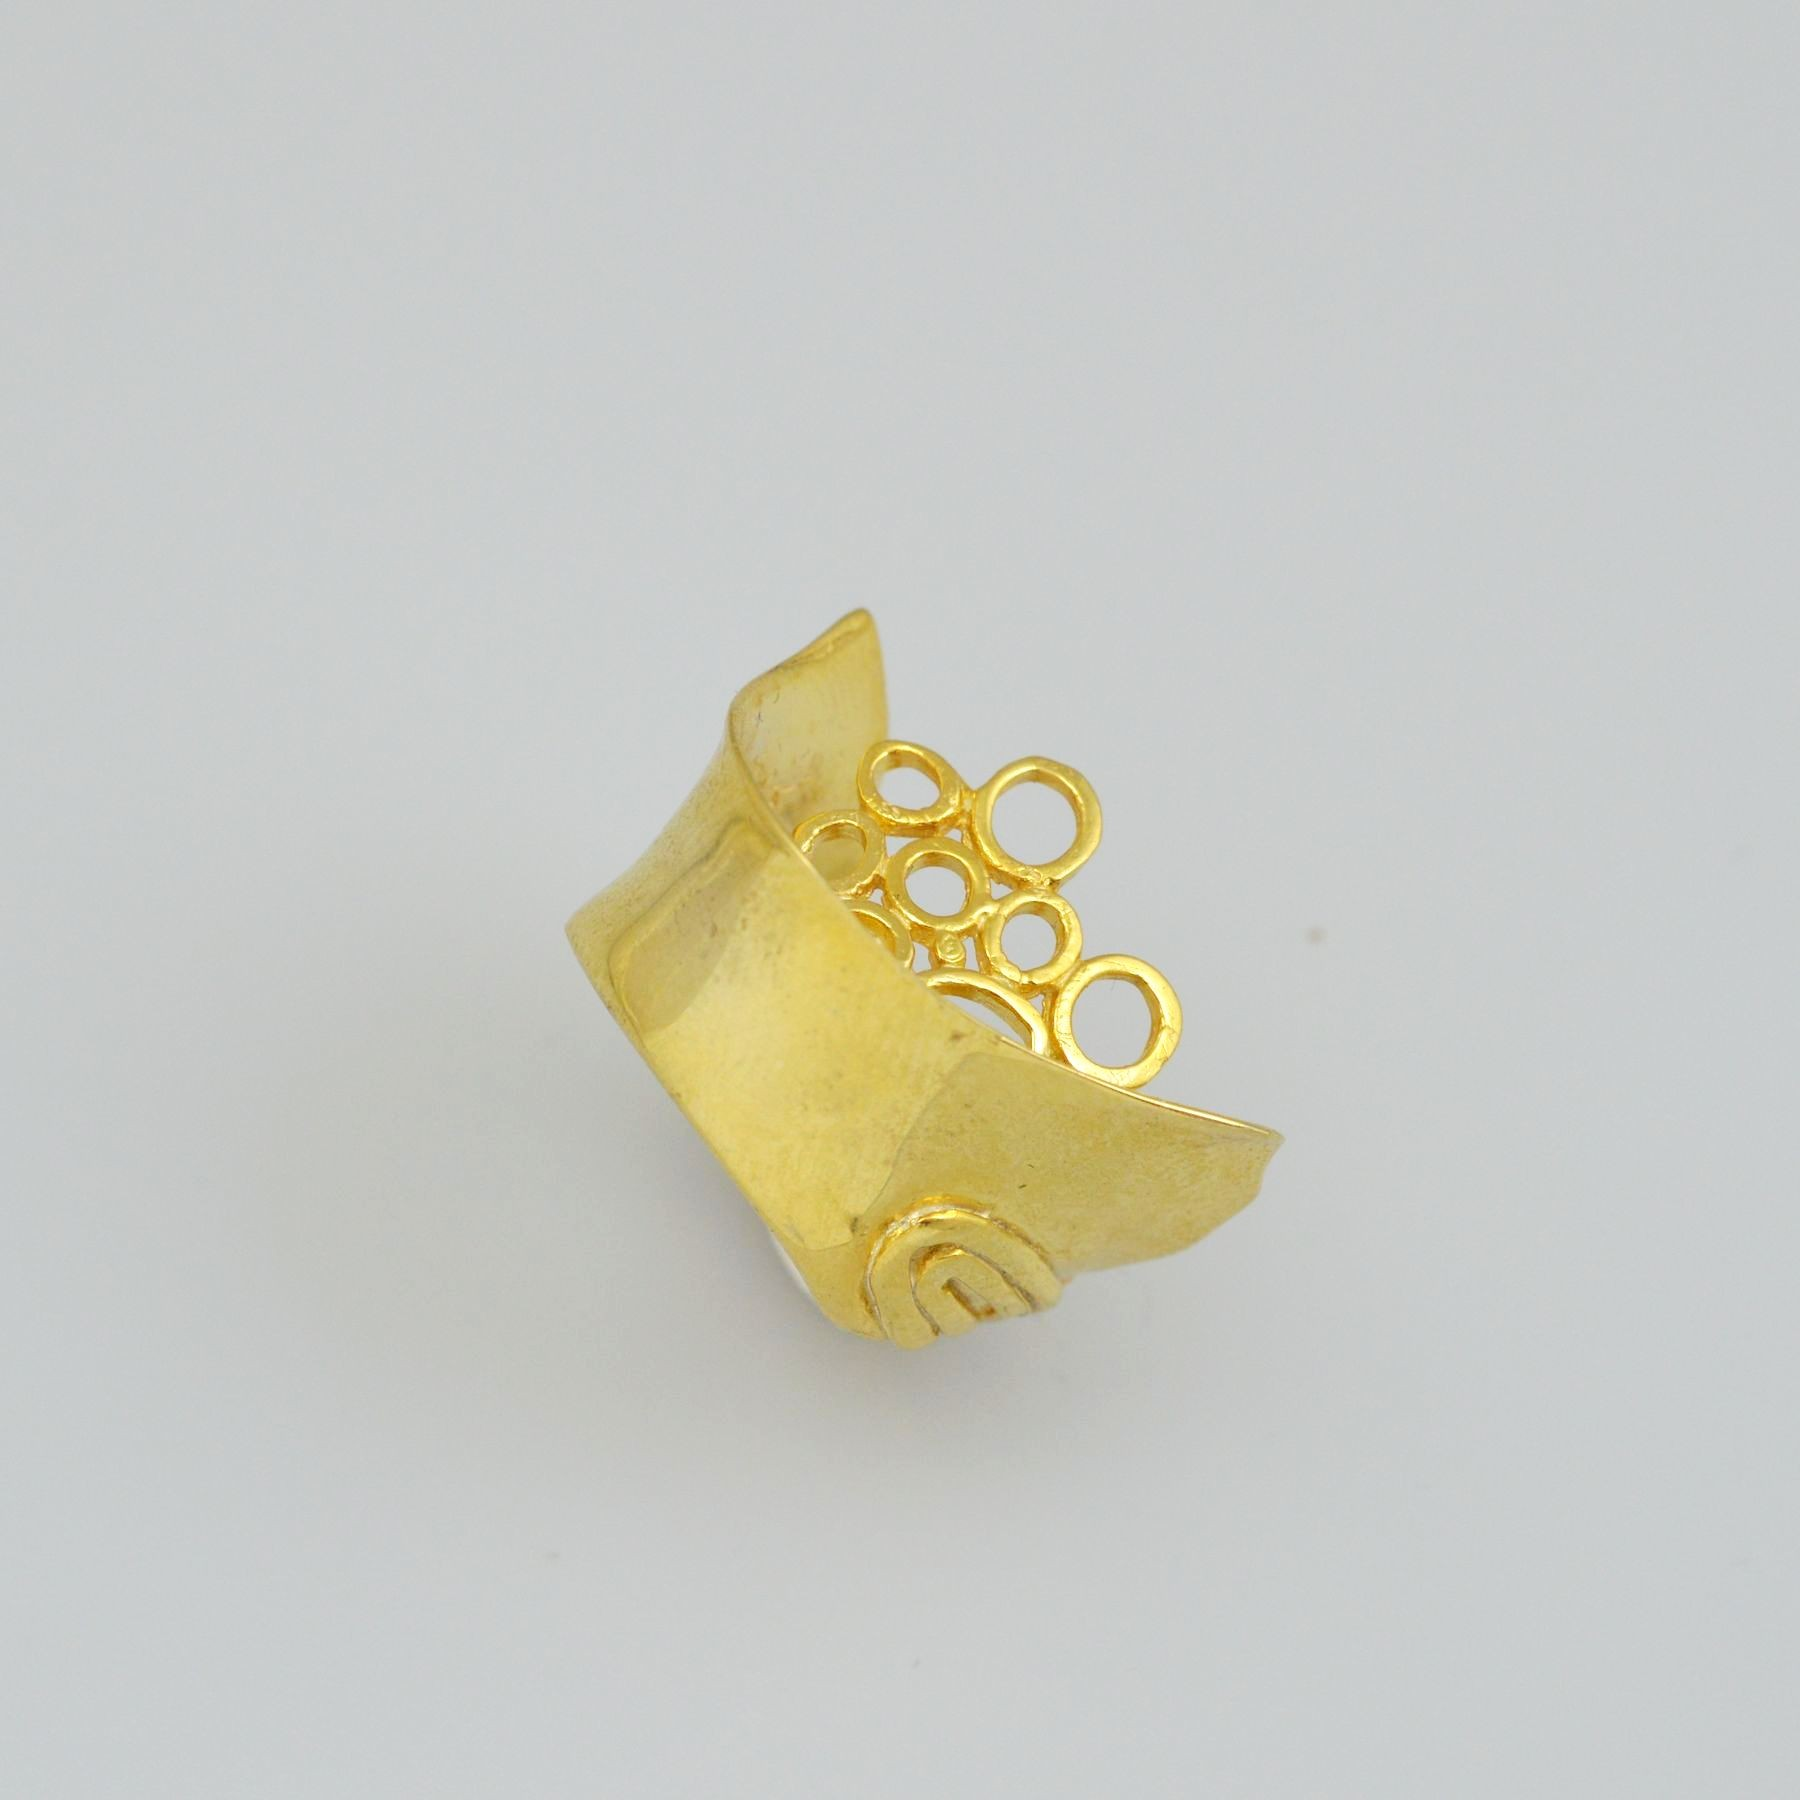 Silver ring 925 goldplated